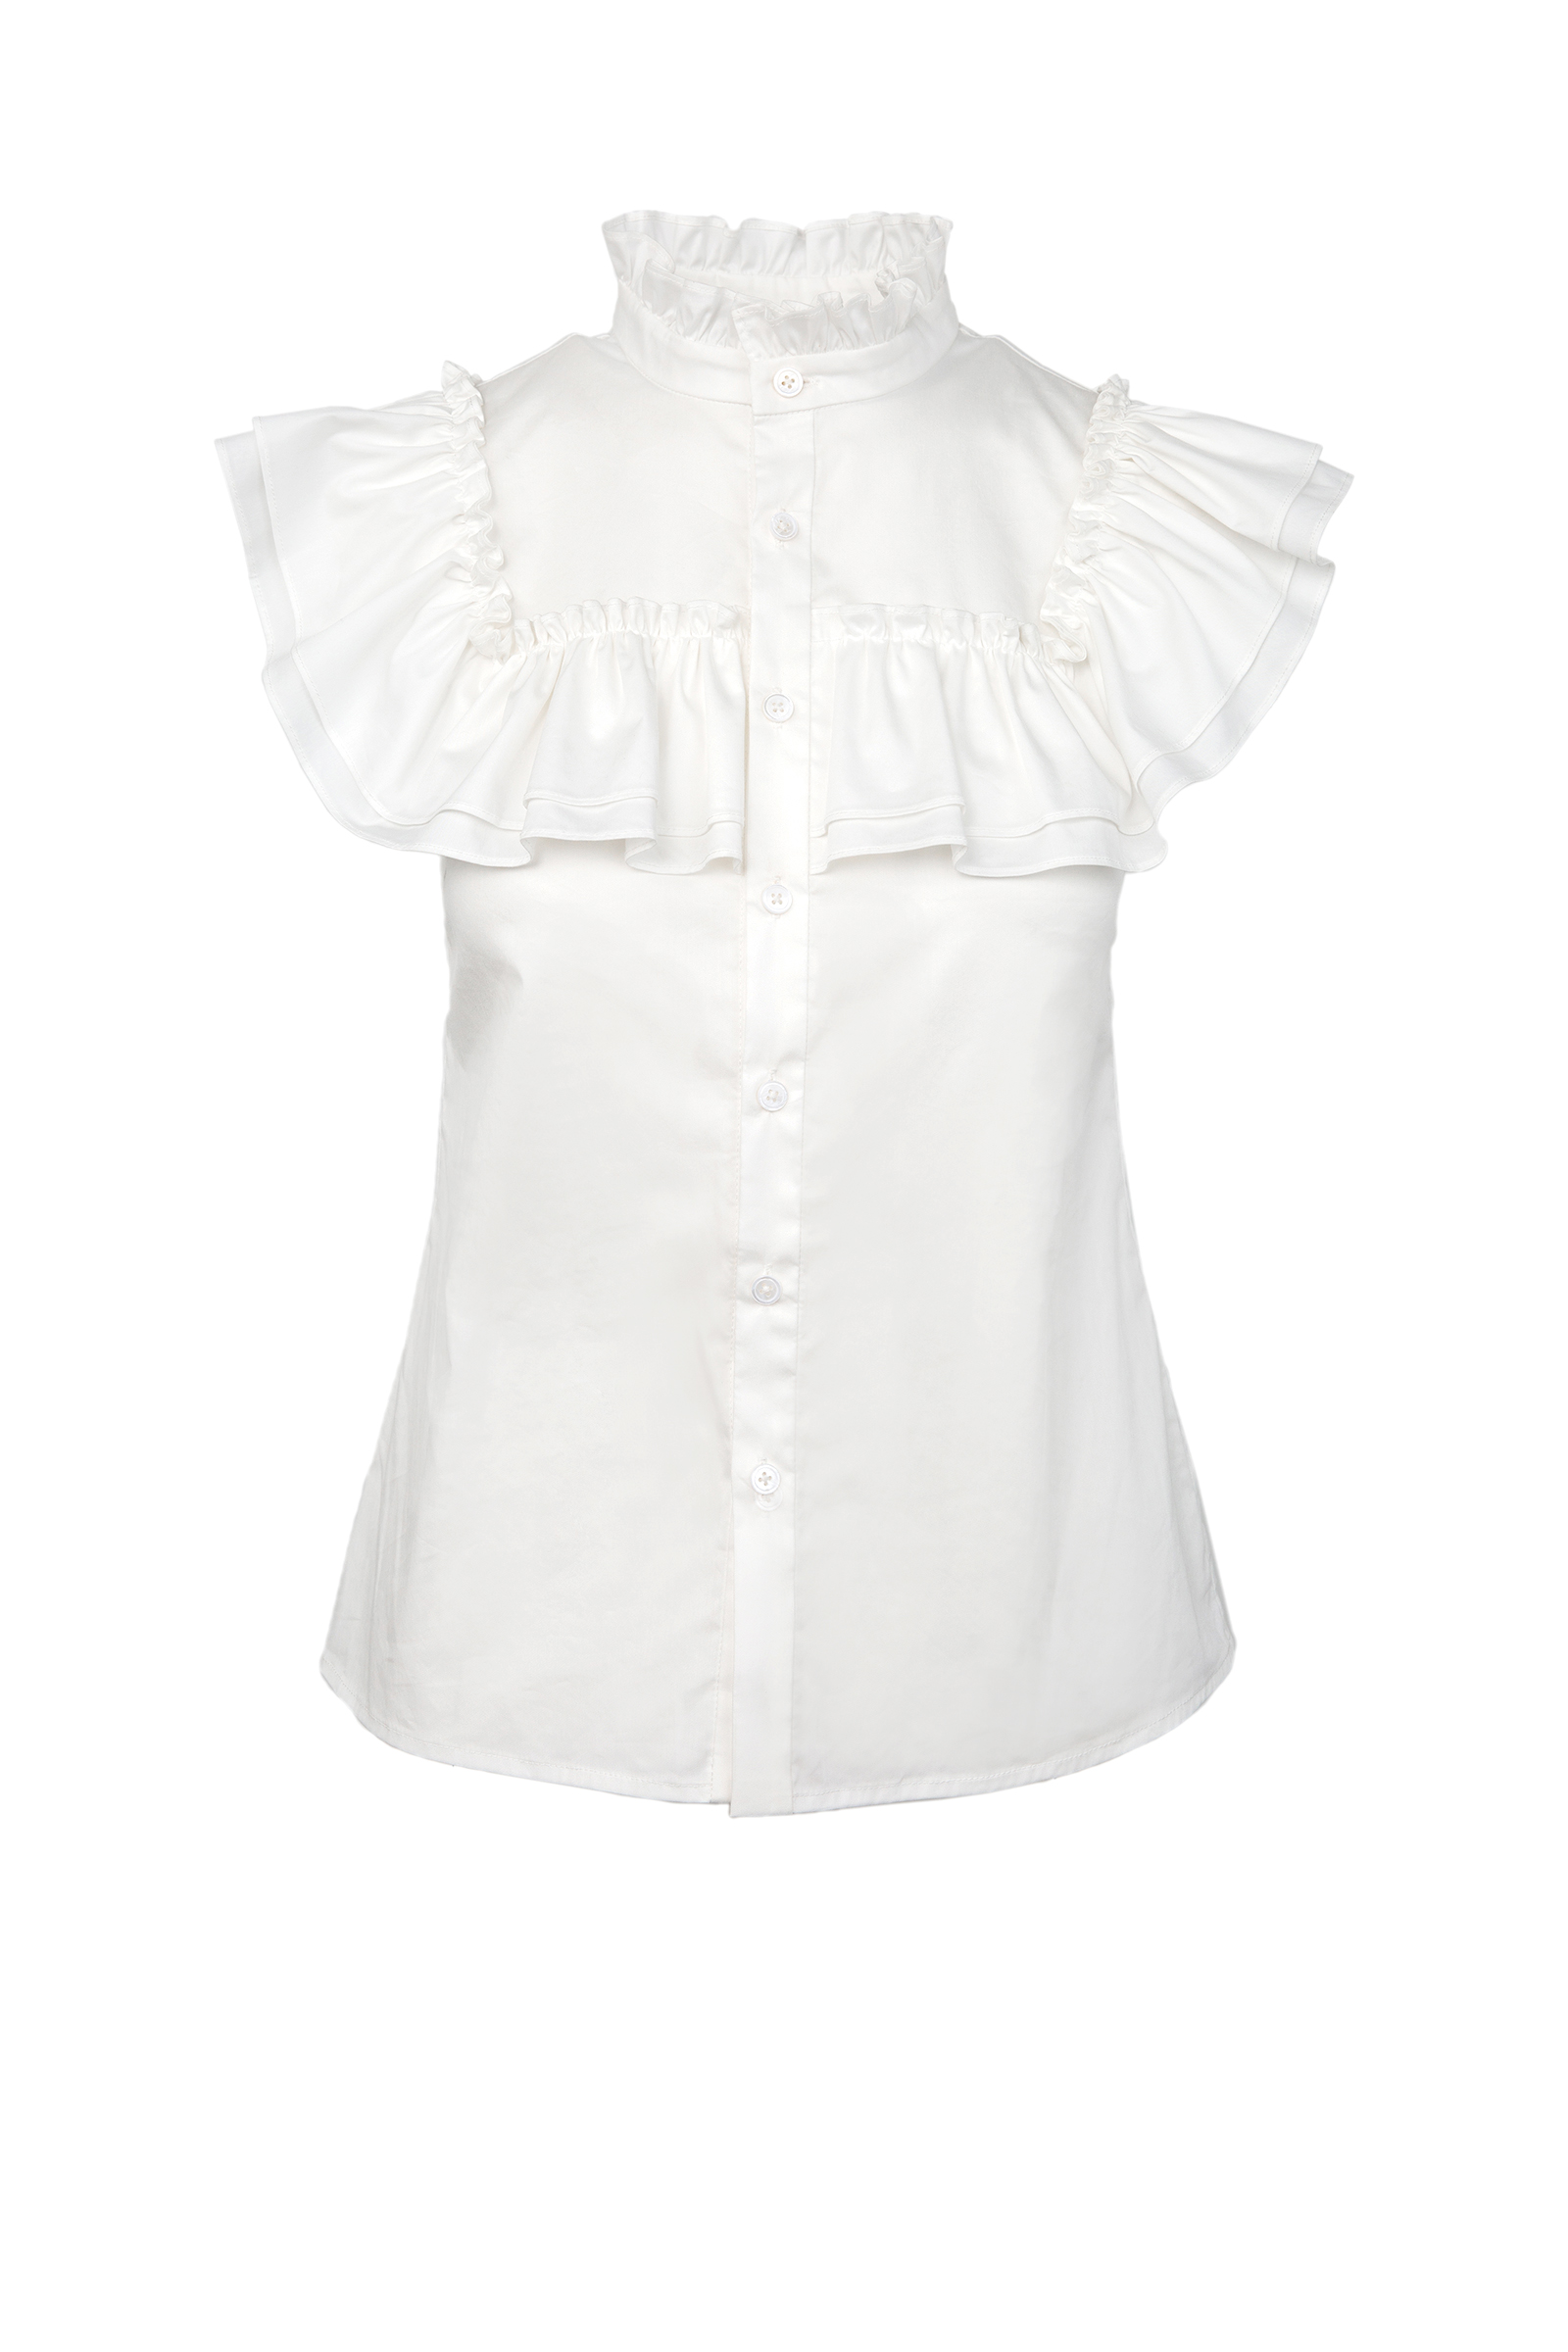 Edie Ruffled Blouse by J.ING women's fashion clothing in LA